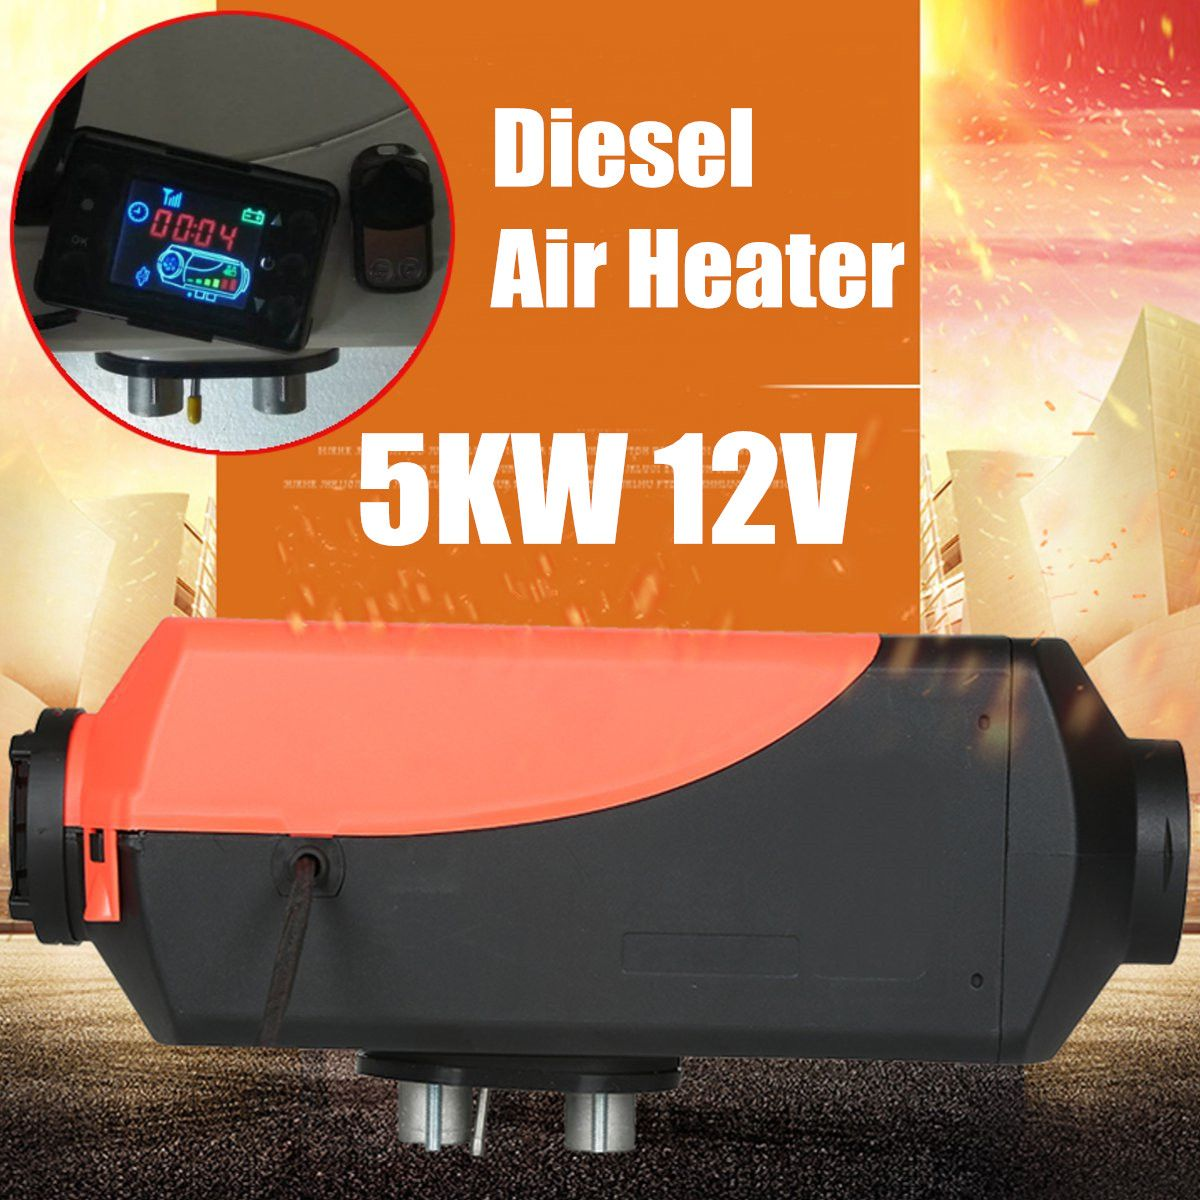 5kw 12v Diesel Air Heater Lcd Switch Remote Control Set For Planar Car Truck Bus